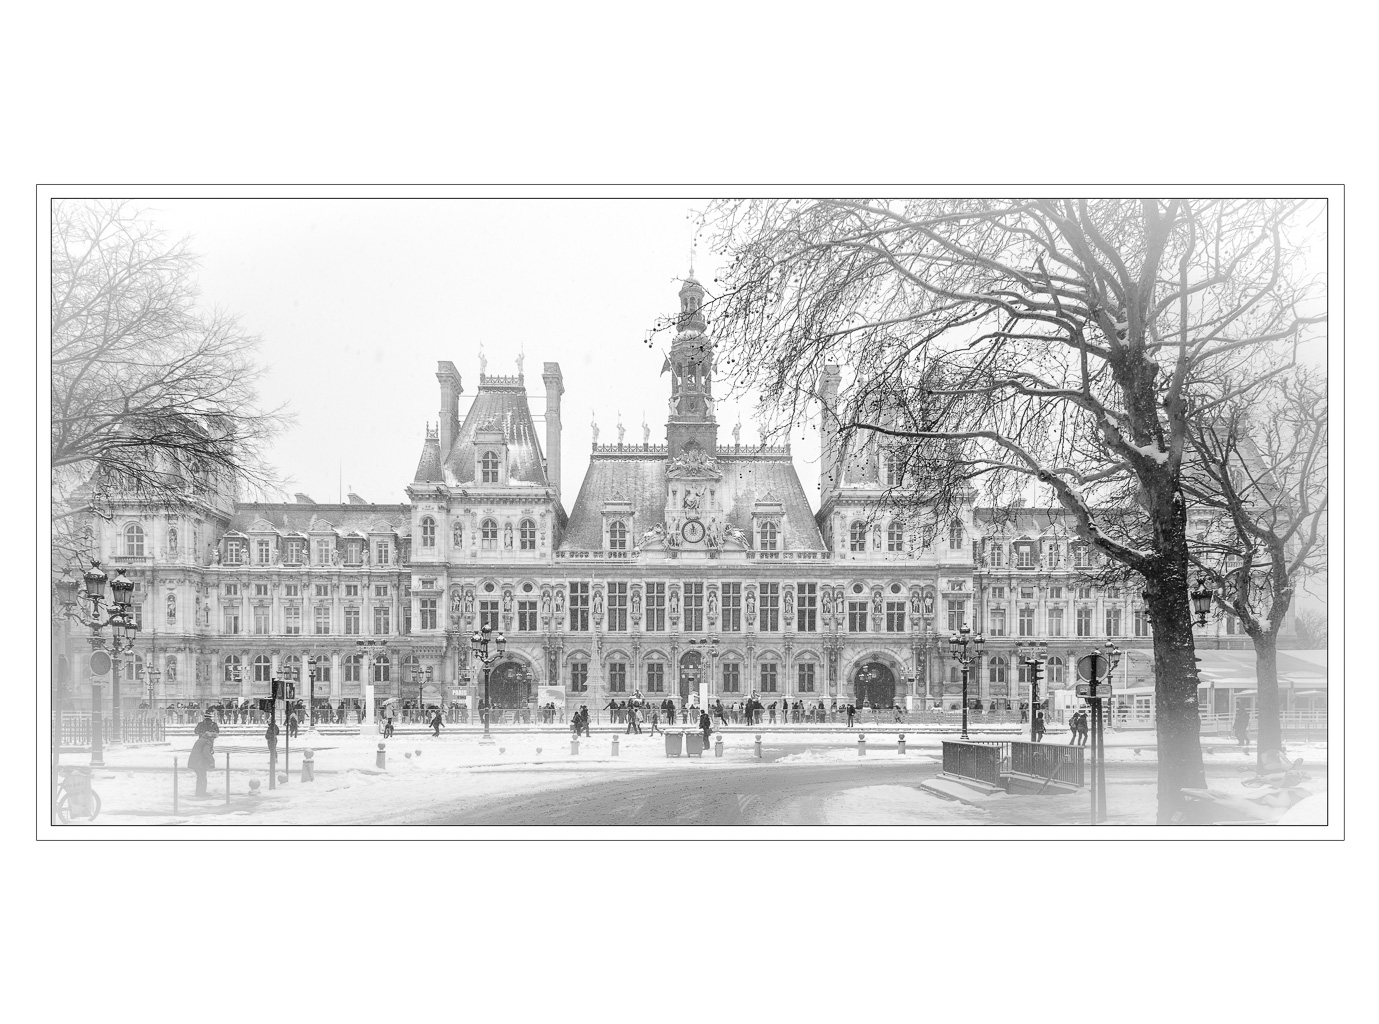 Advanced Mono Prints - HC - Hotel De Ville by Alan Sawyer (January 2015)